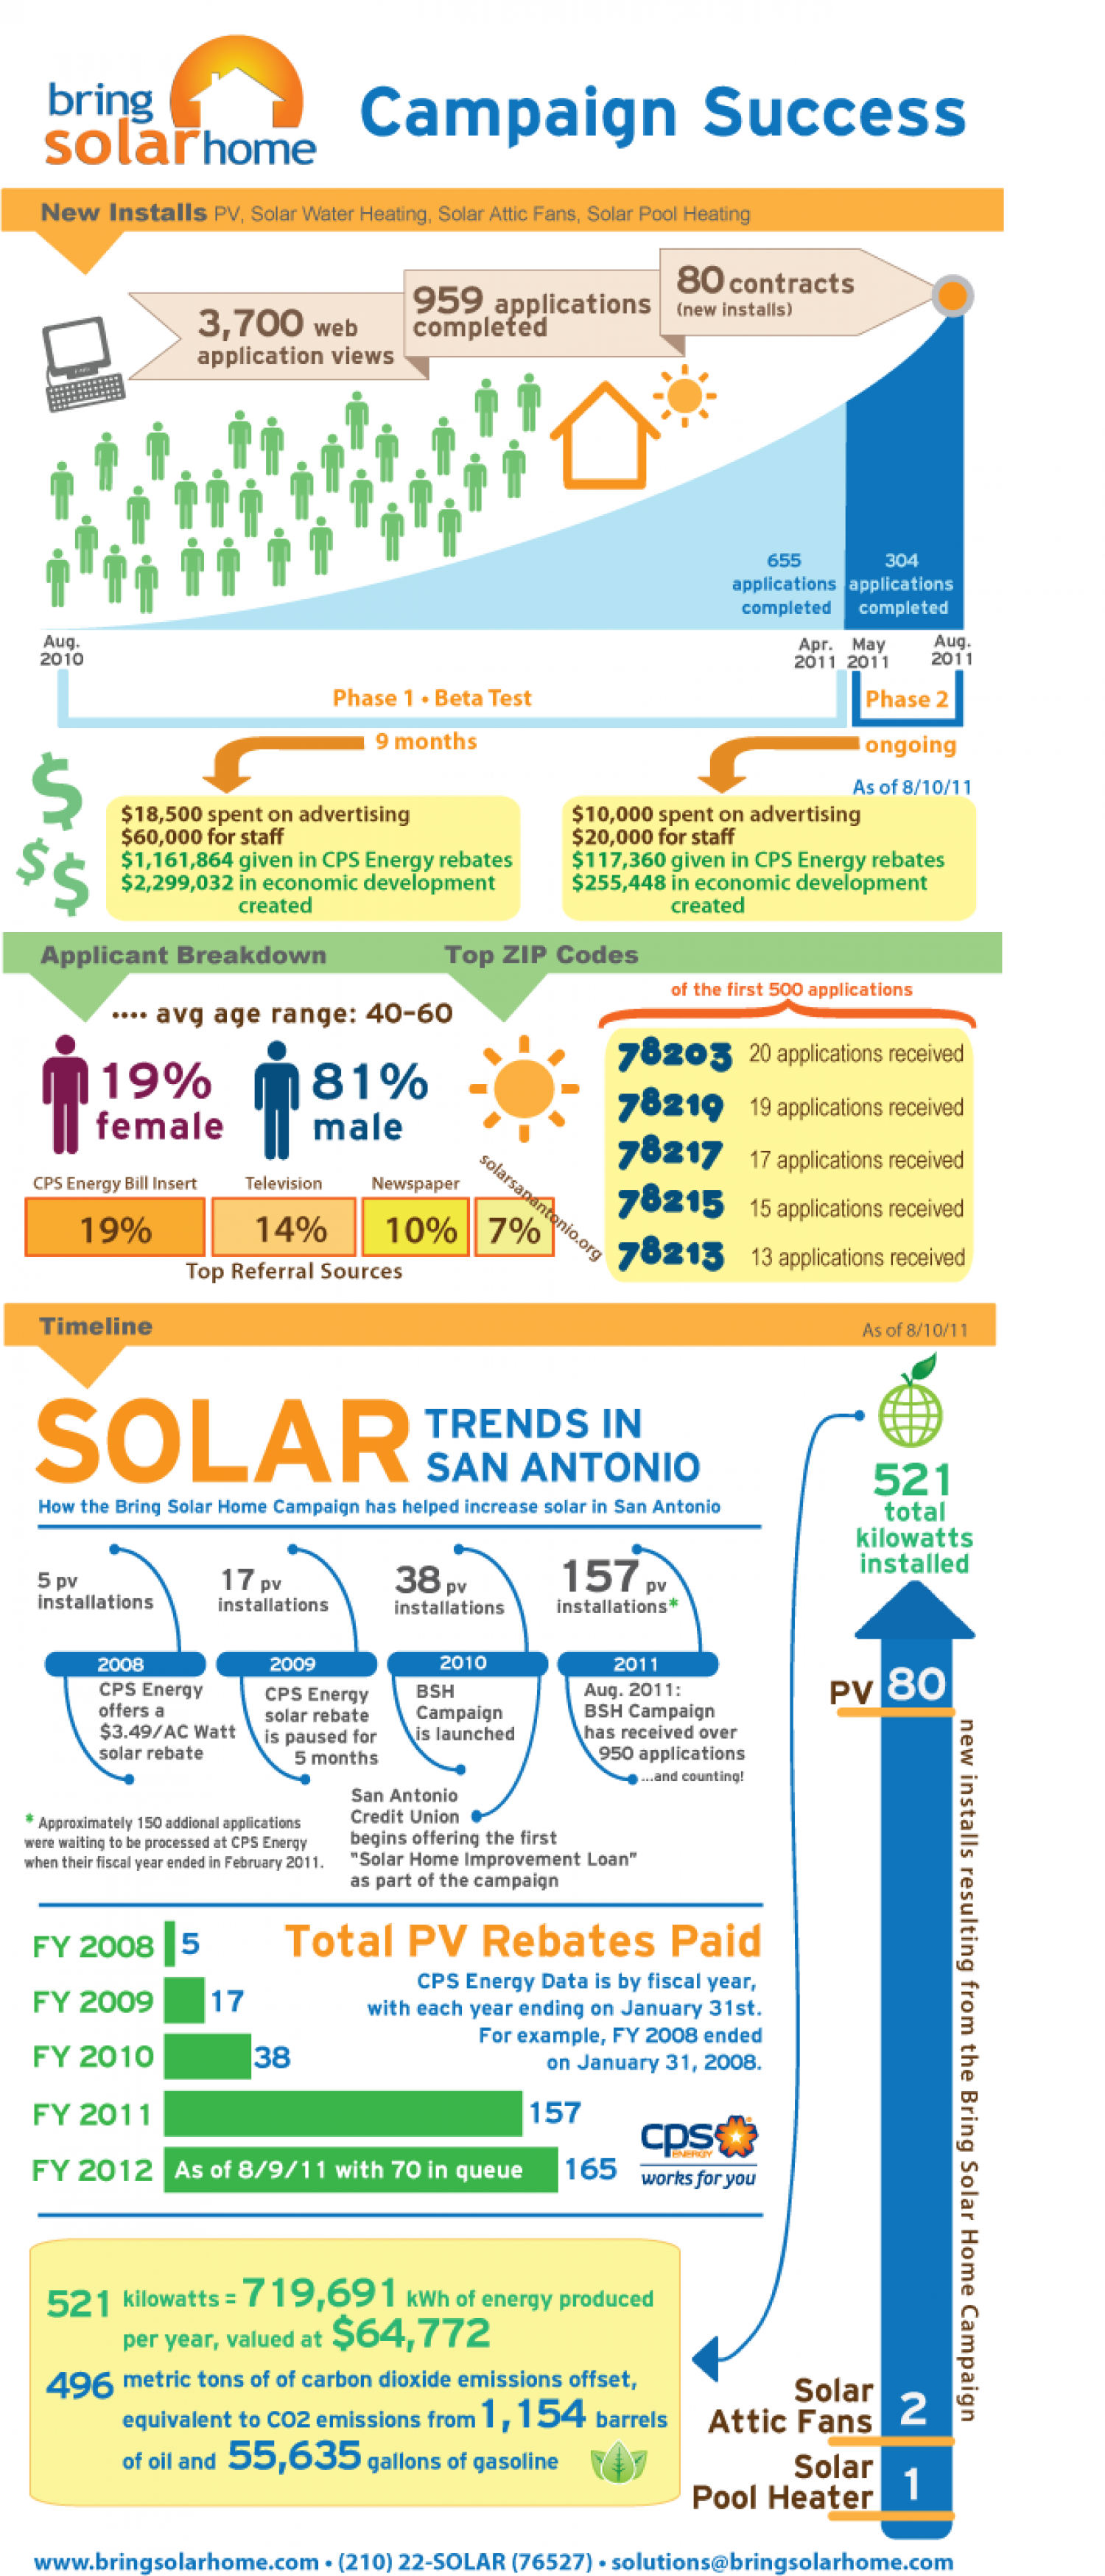 Bring Solar Home Campaign Success Infographic